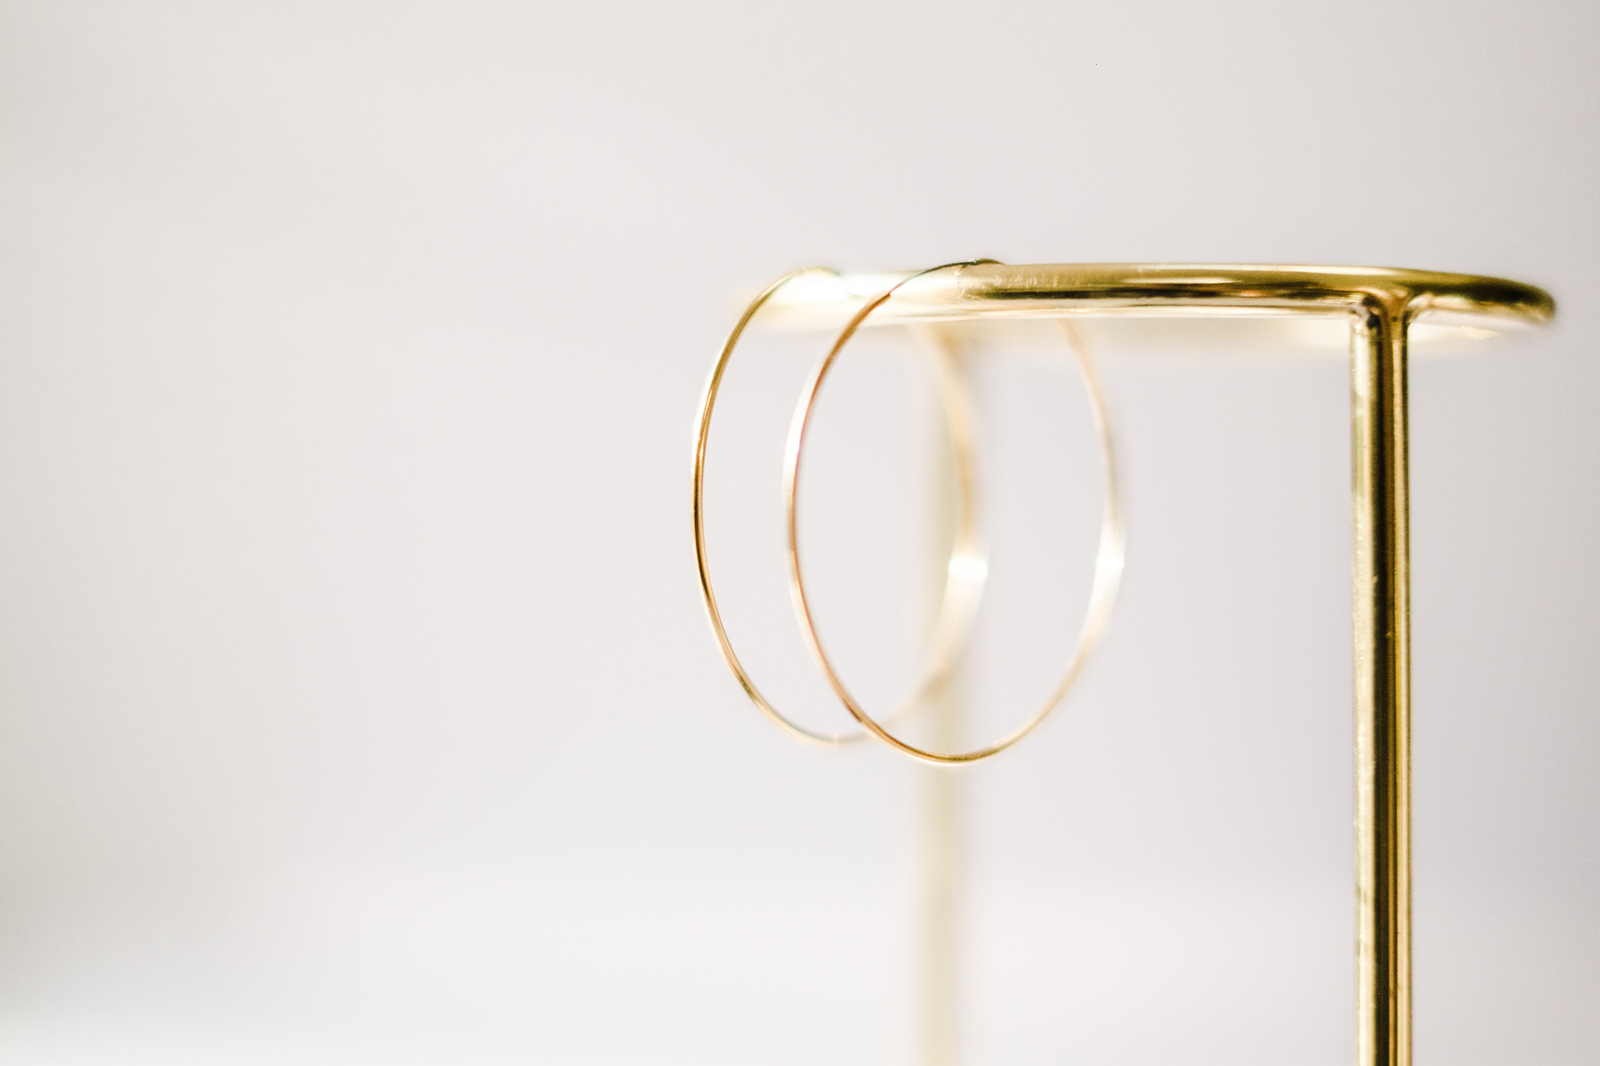 Delicate gold hoops hanging on a gold jewellery stand as part of a product shoot